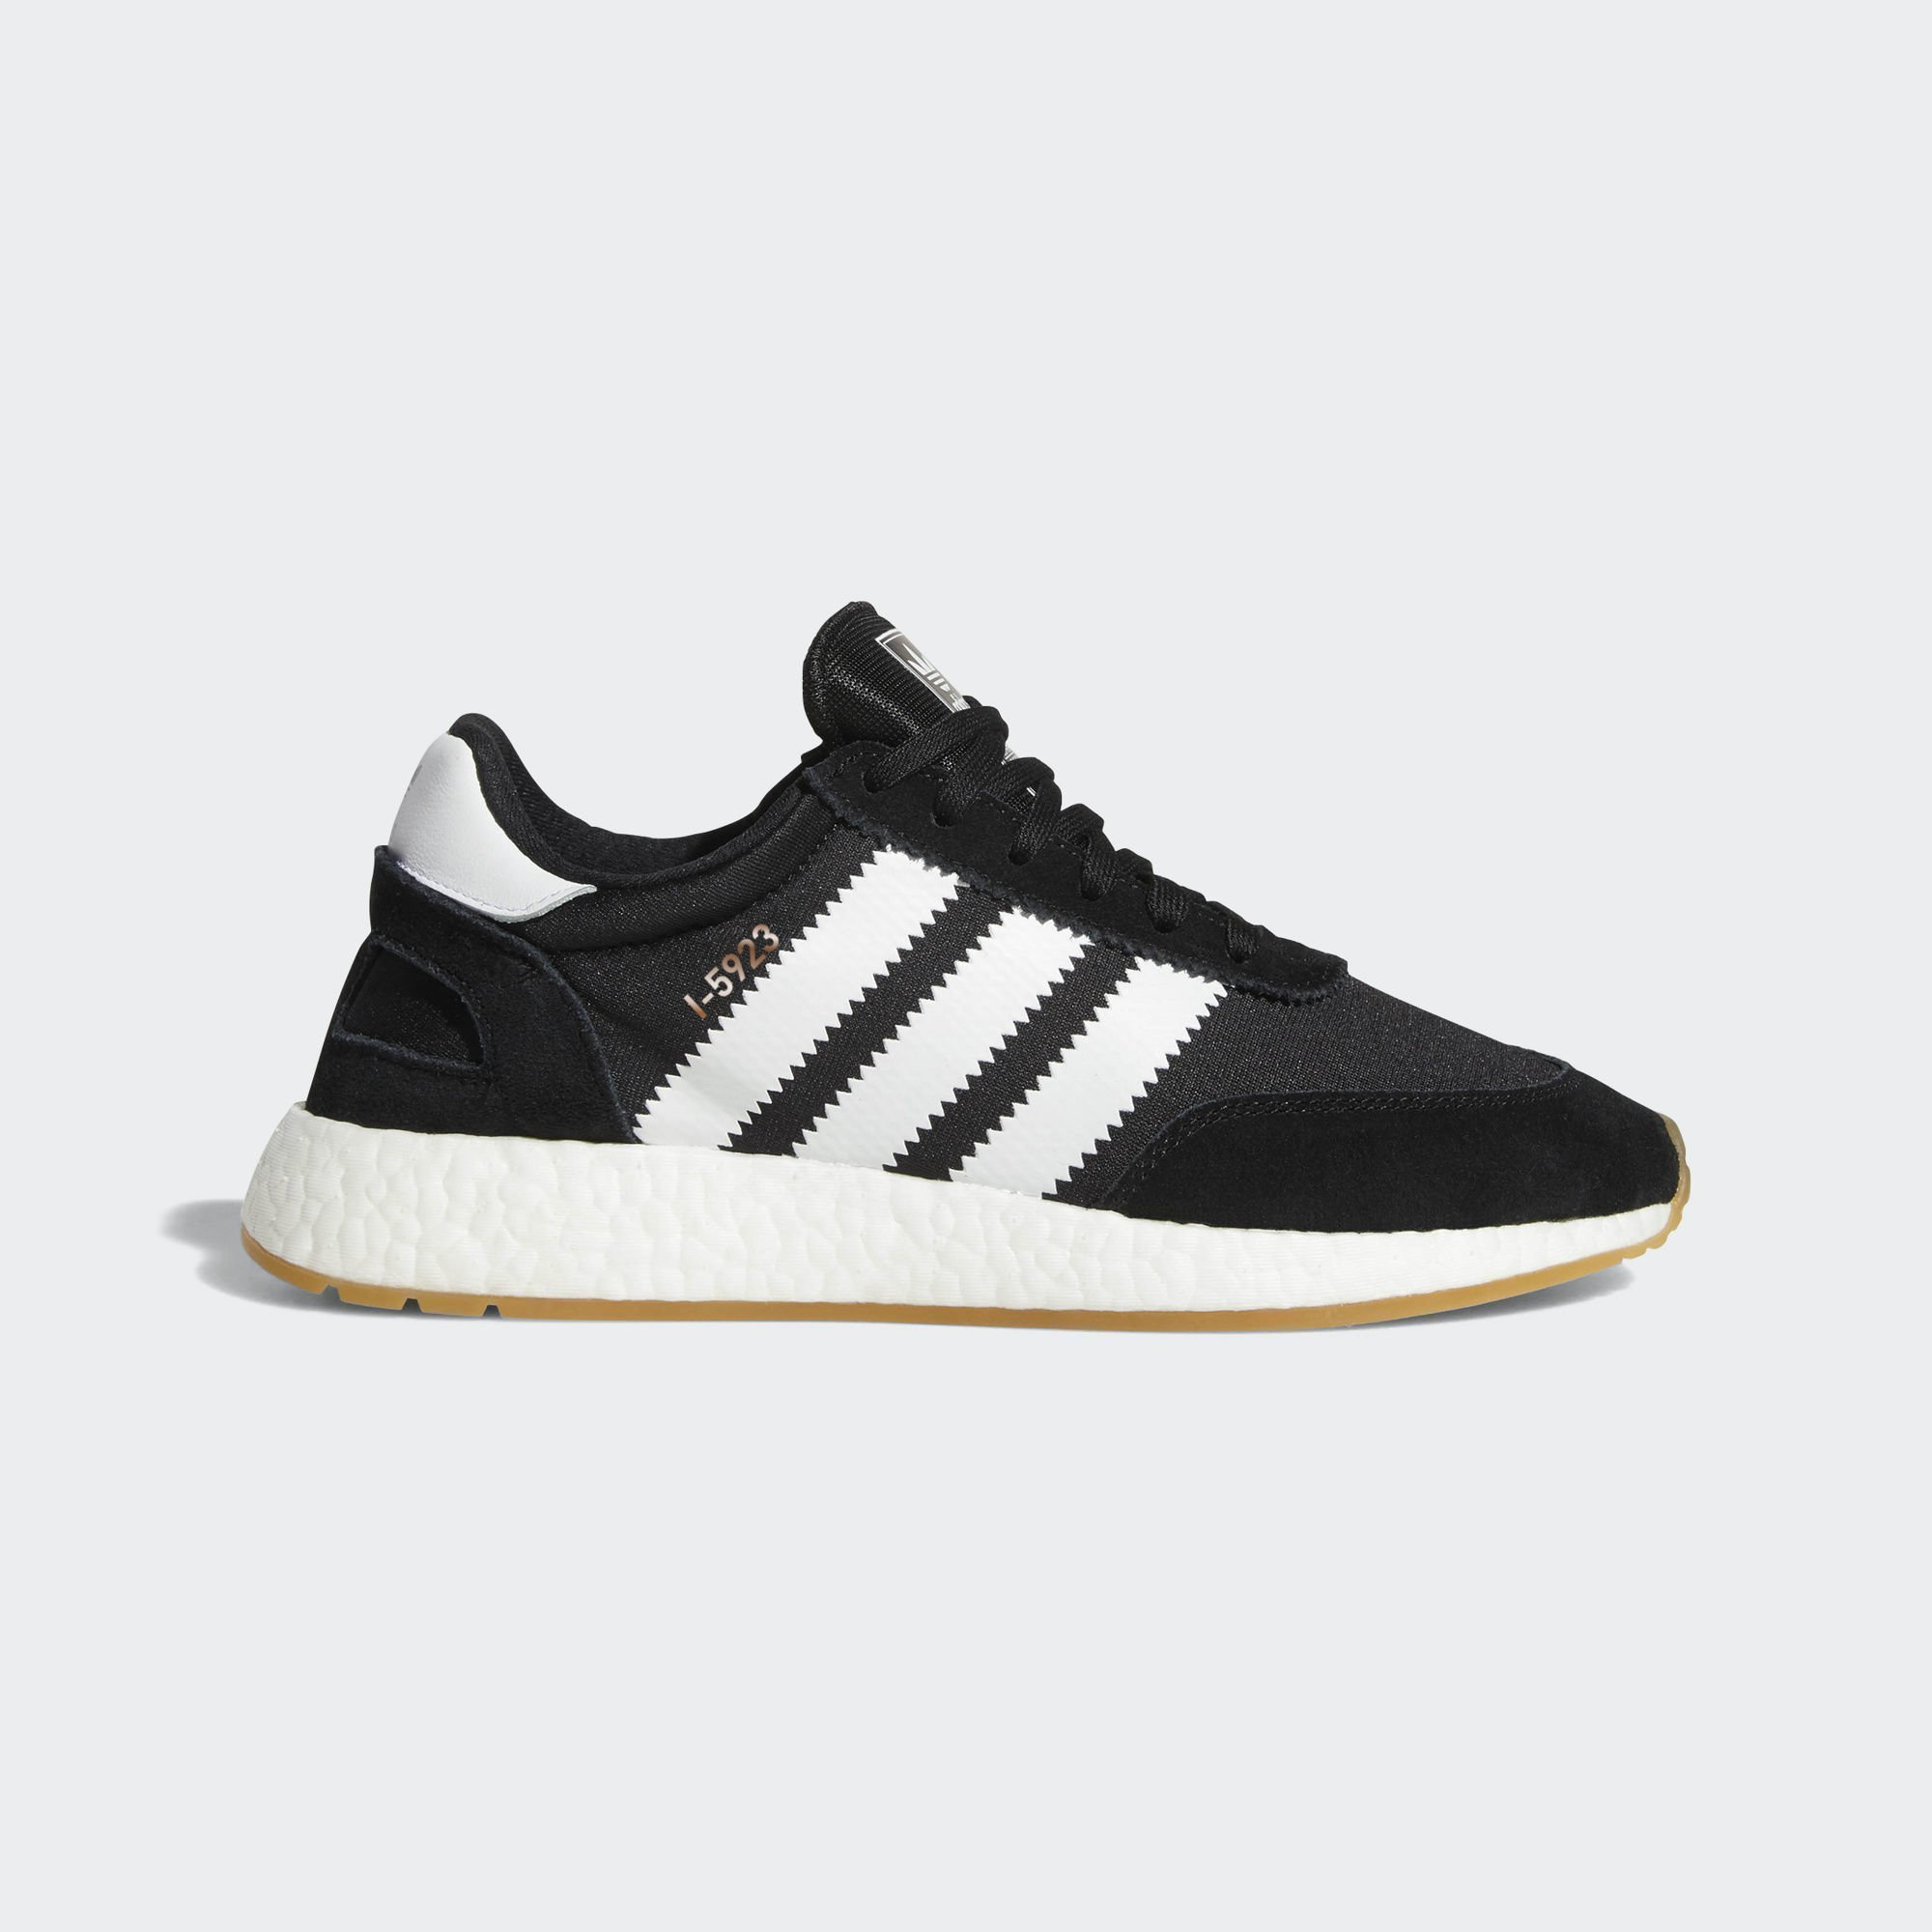 adidas Iniki Runner Boost Black White (BY9727)